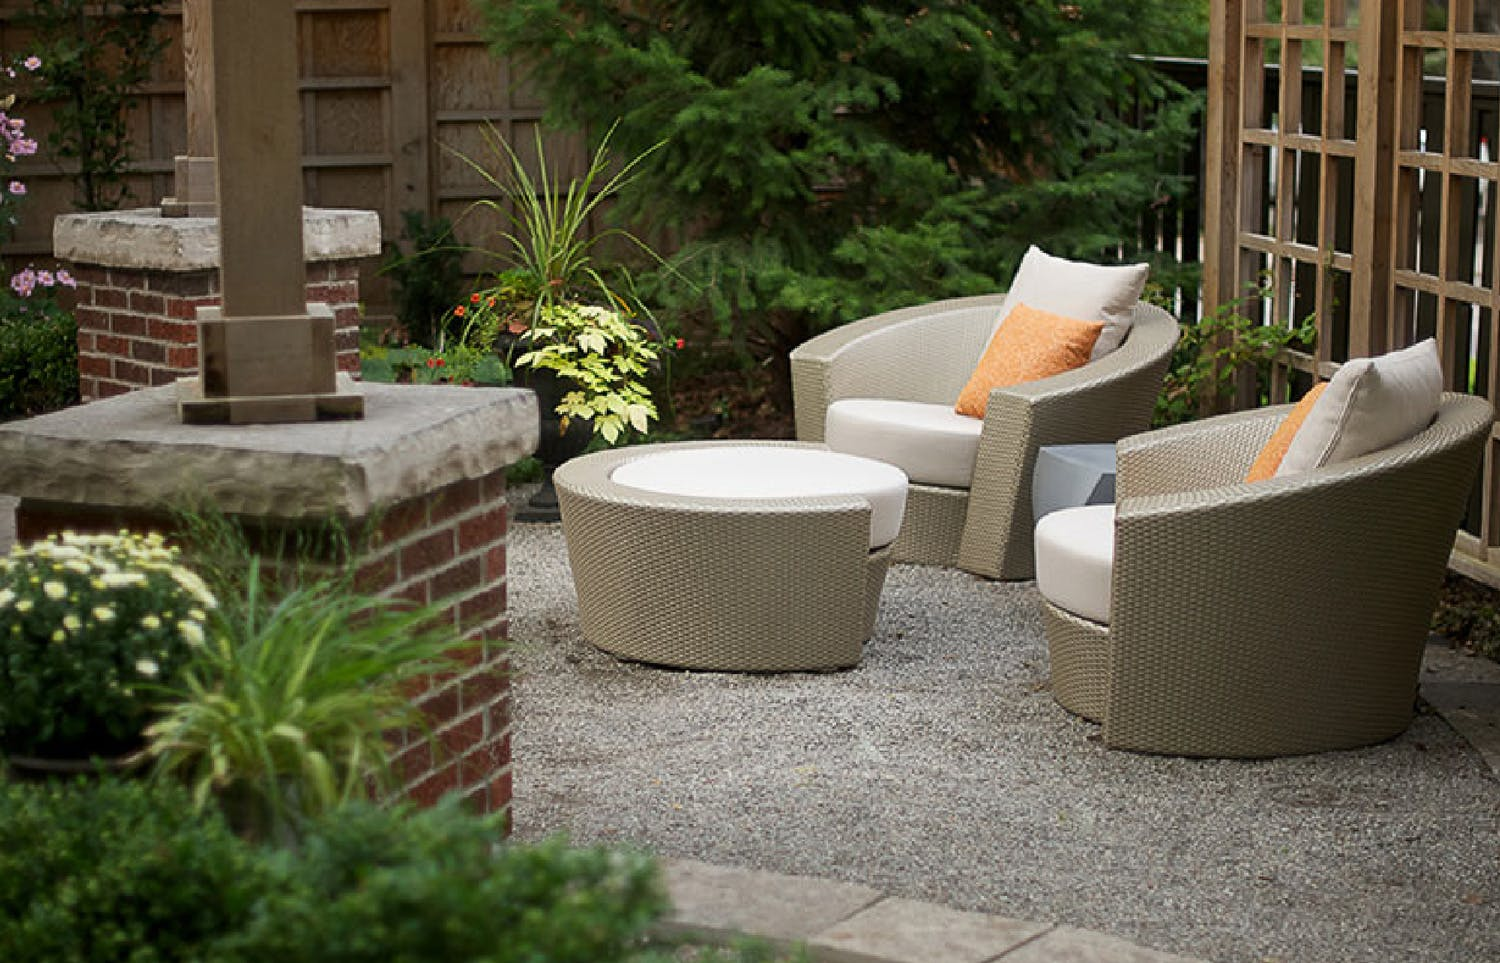 A backyard seating area